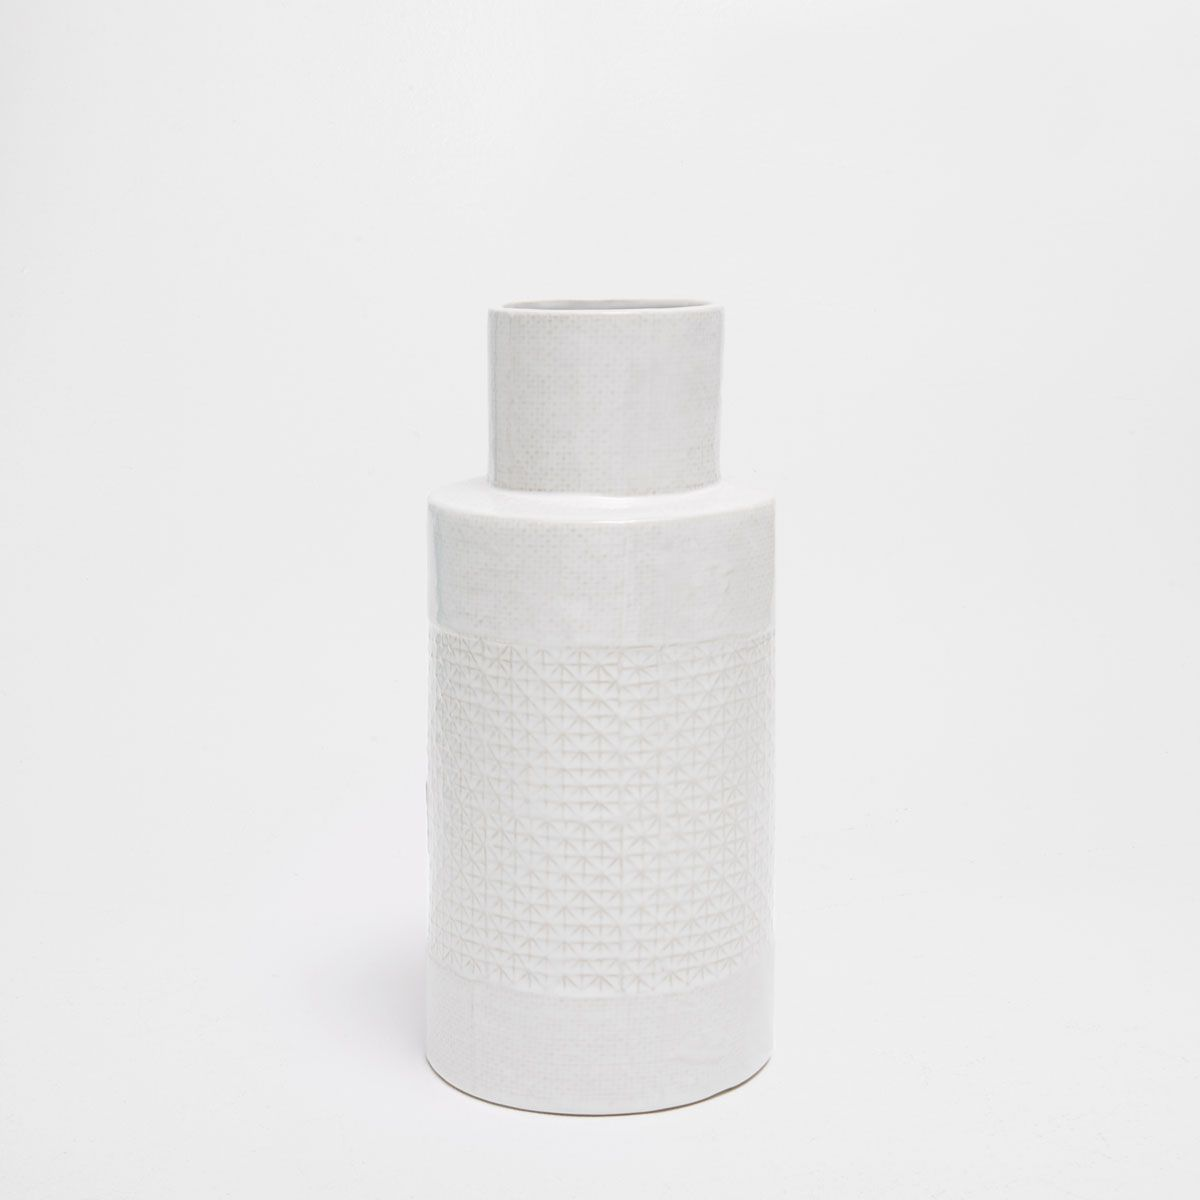 Image 1 of the product SHINY CERAMIC VASE WITH A RAISED DESIGN